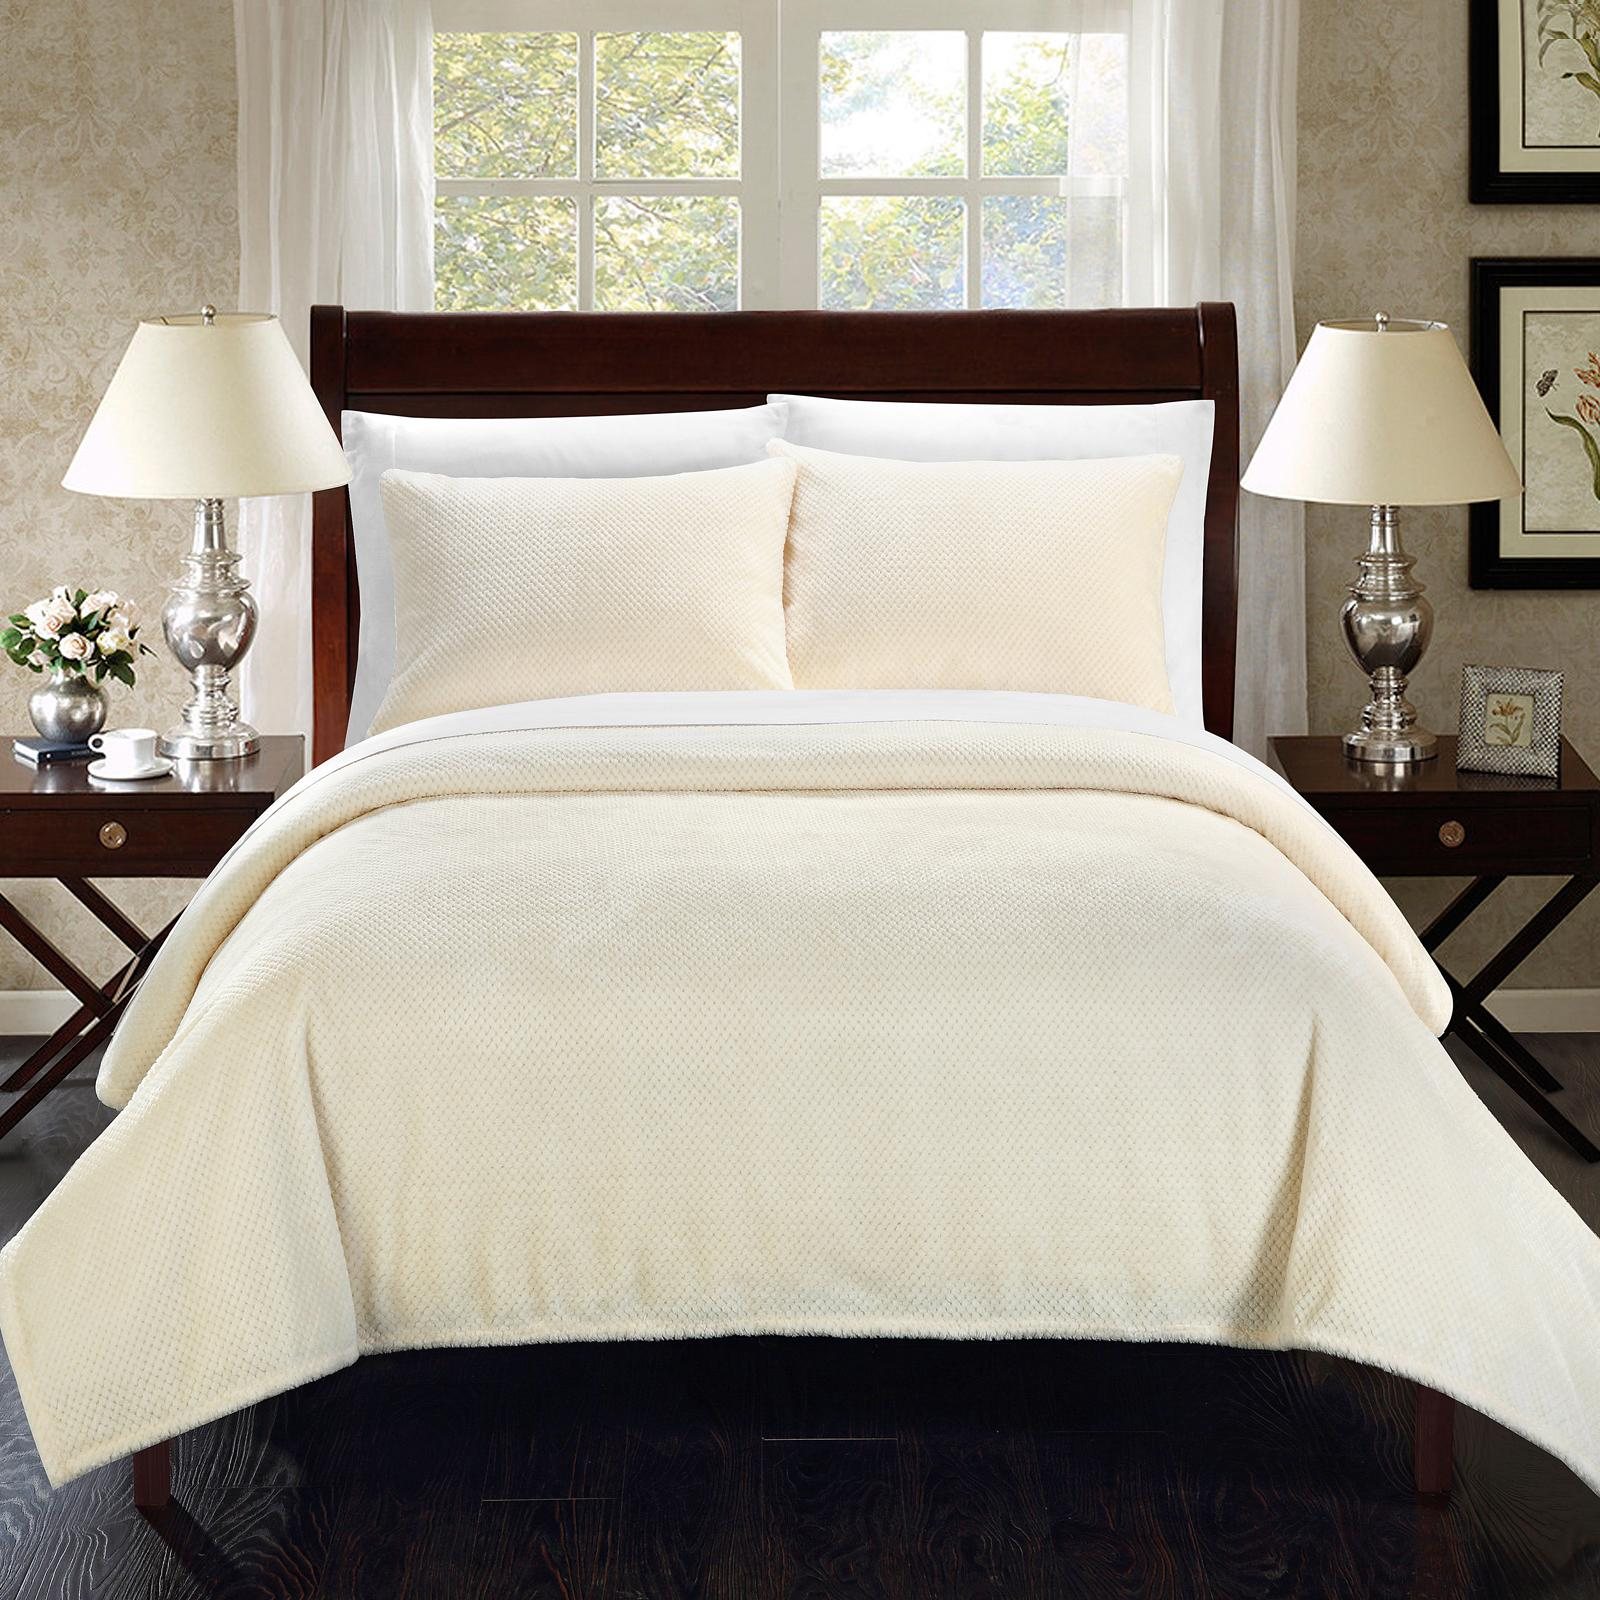 Bedding Marrakesh Compare Prices At Nextag